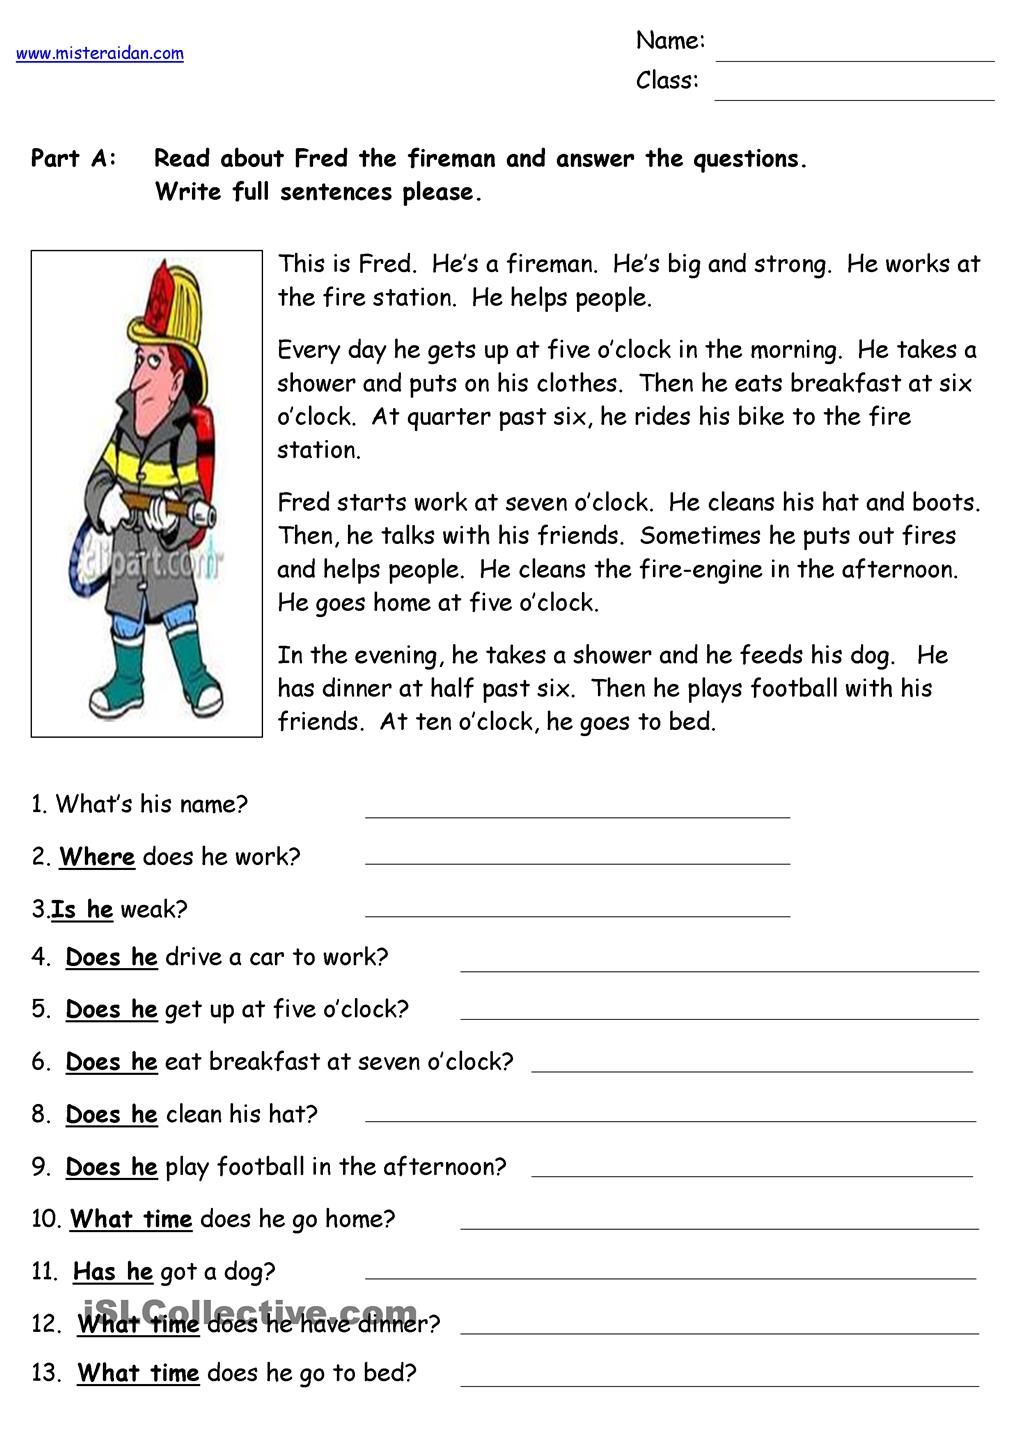 Fred the Fireman Reading Comprehension English grammar